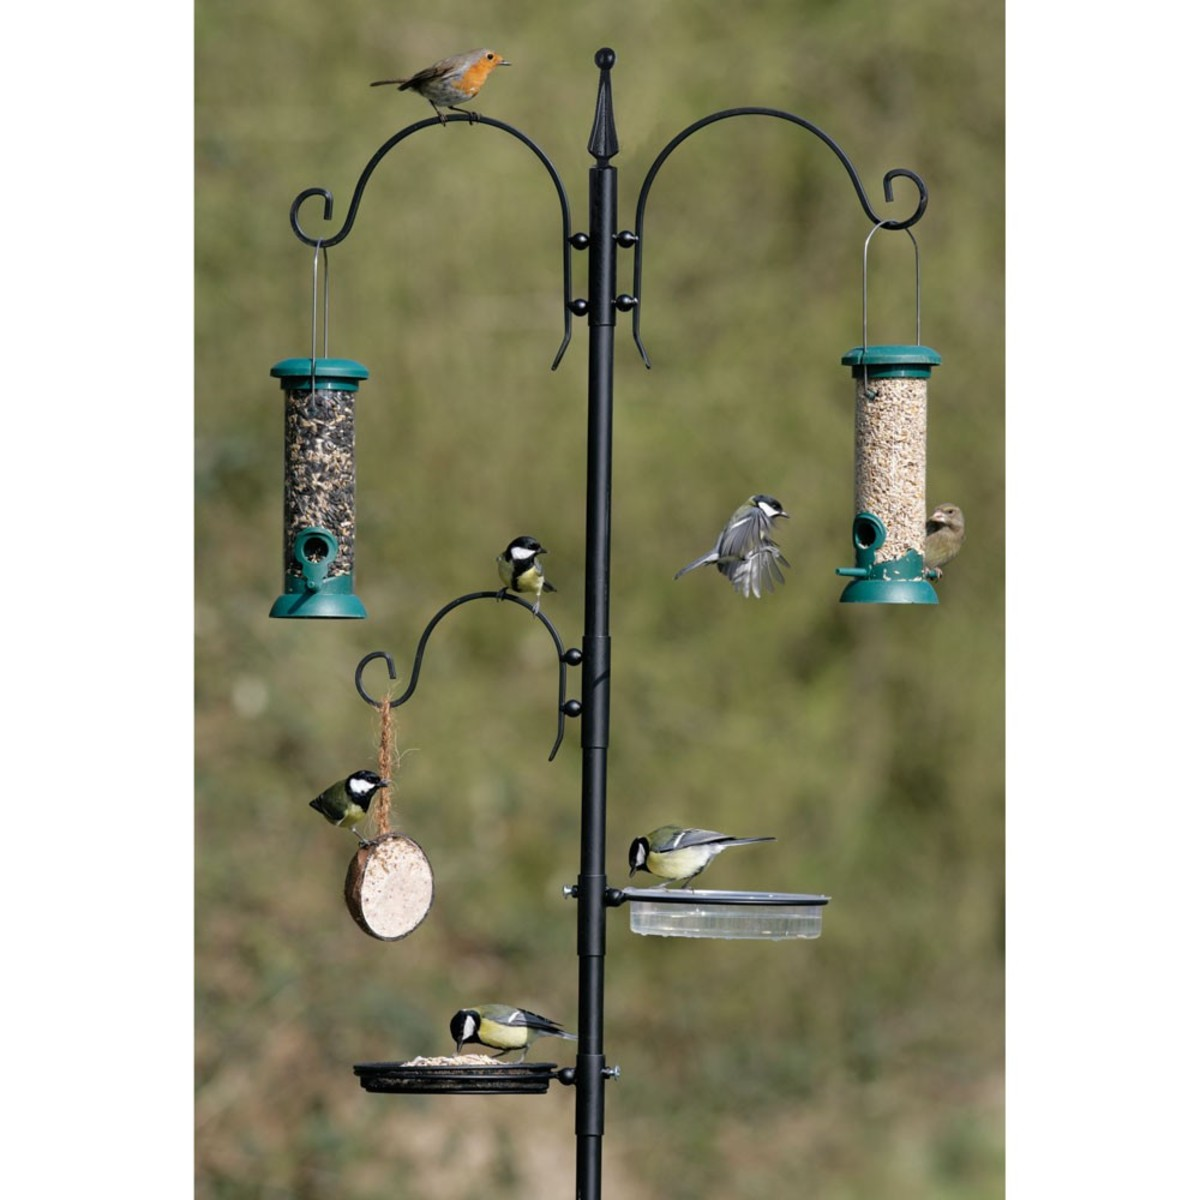 A feeding station for your garden birds